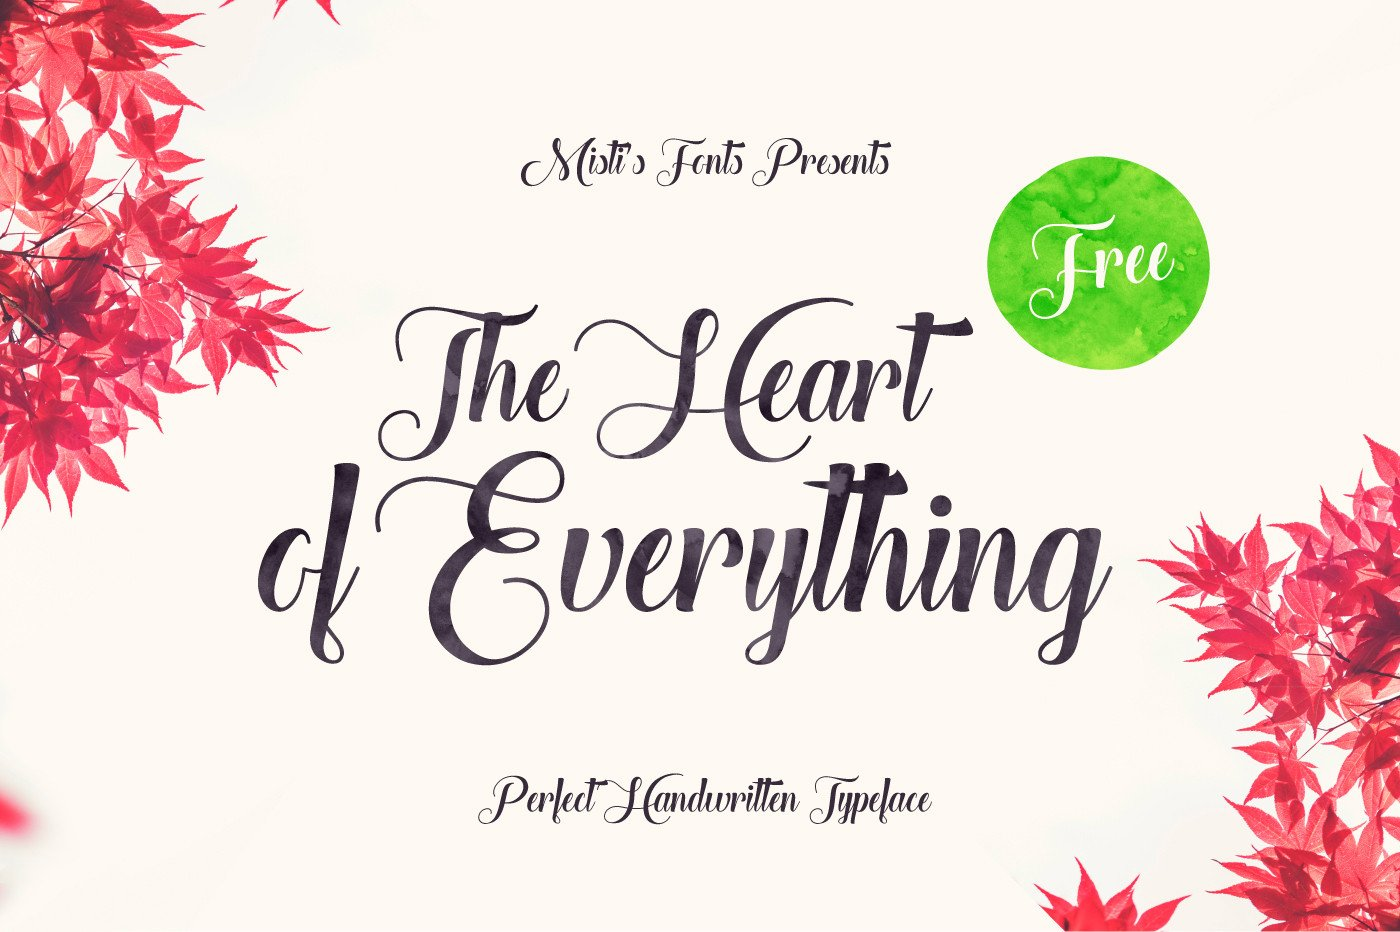 psThe-Heart-Of-Everything-free-script-font-preview-01